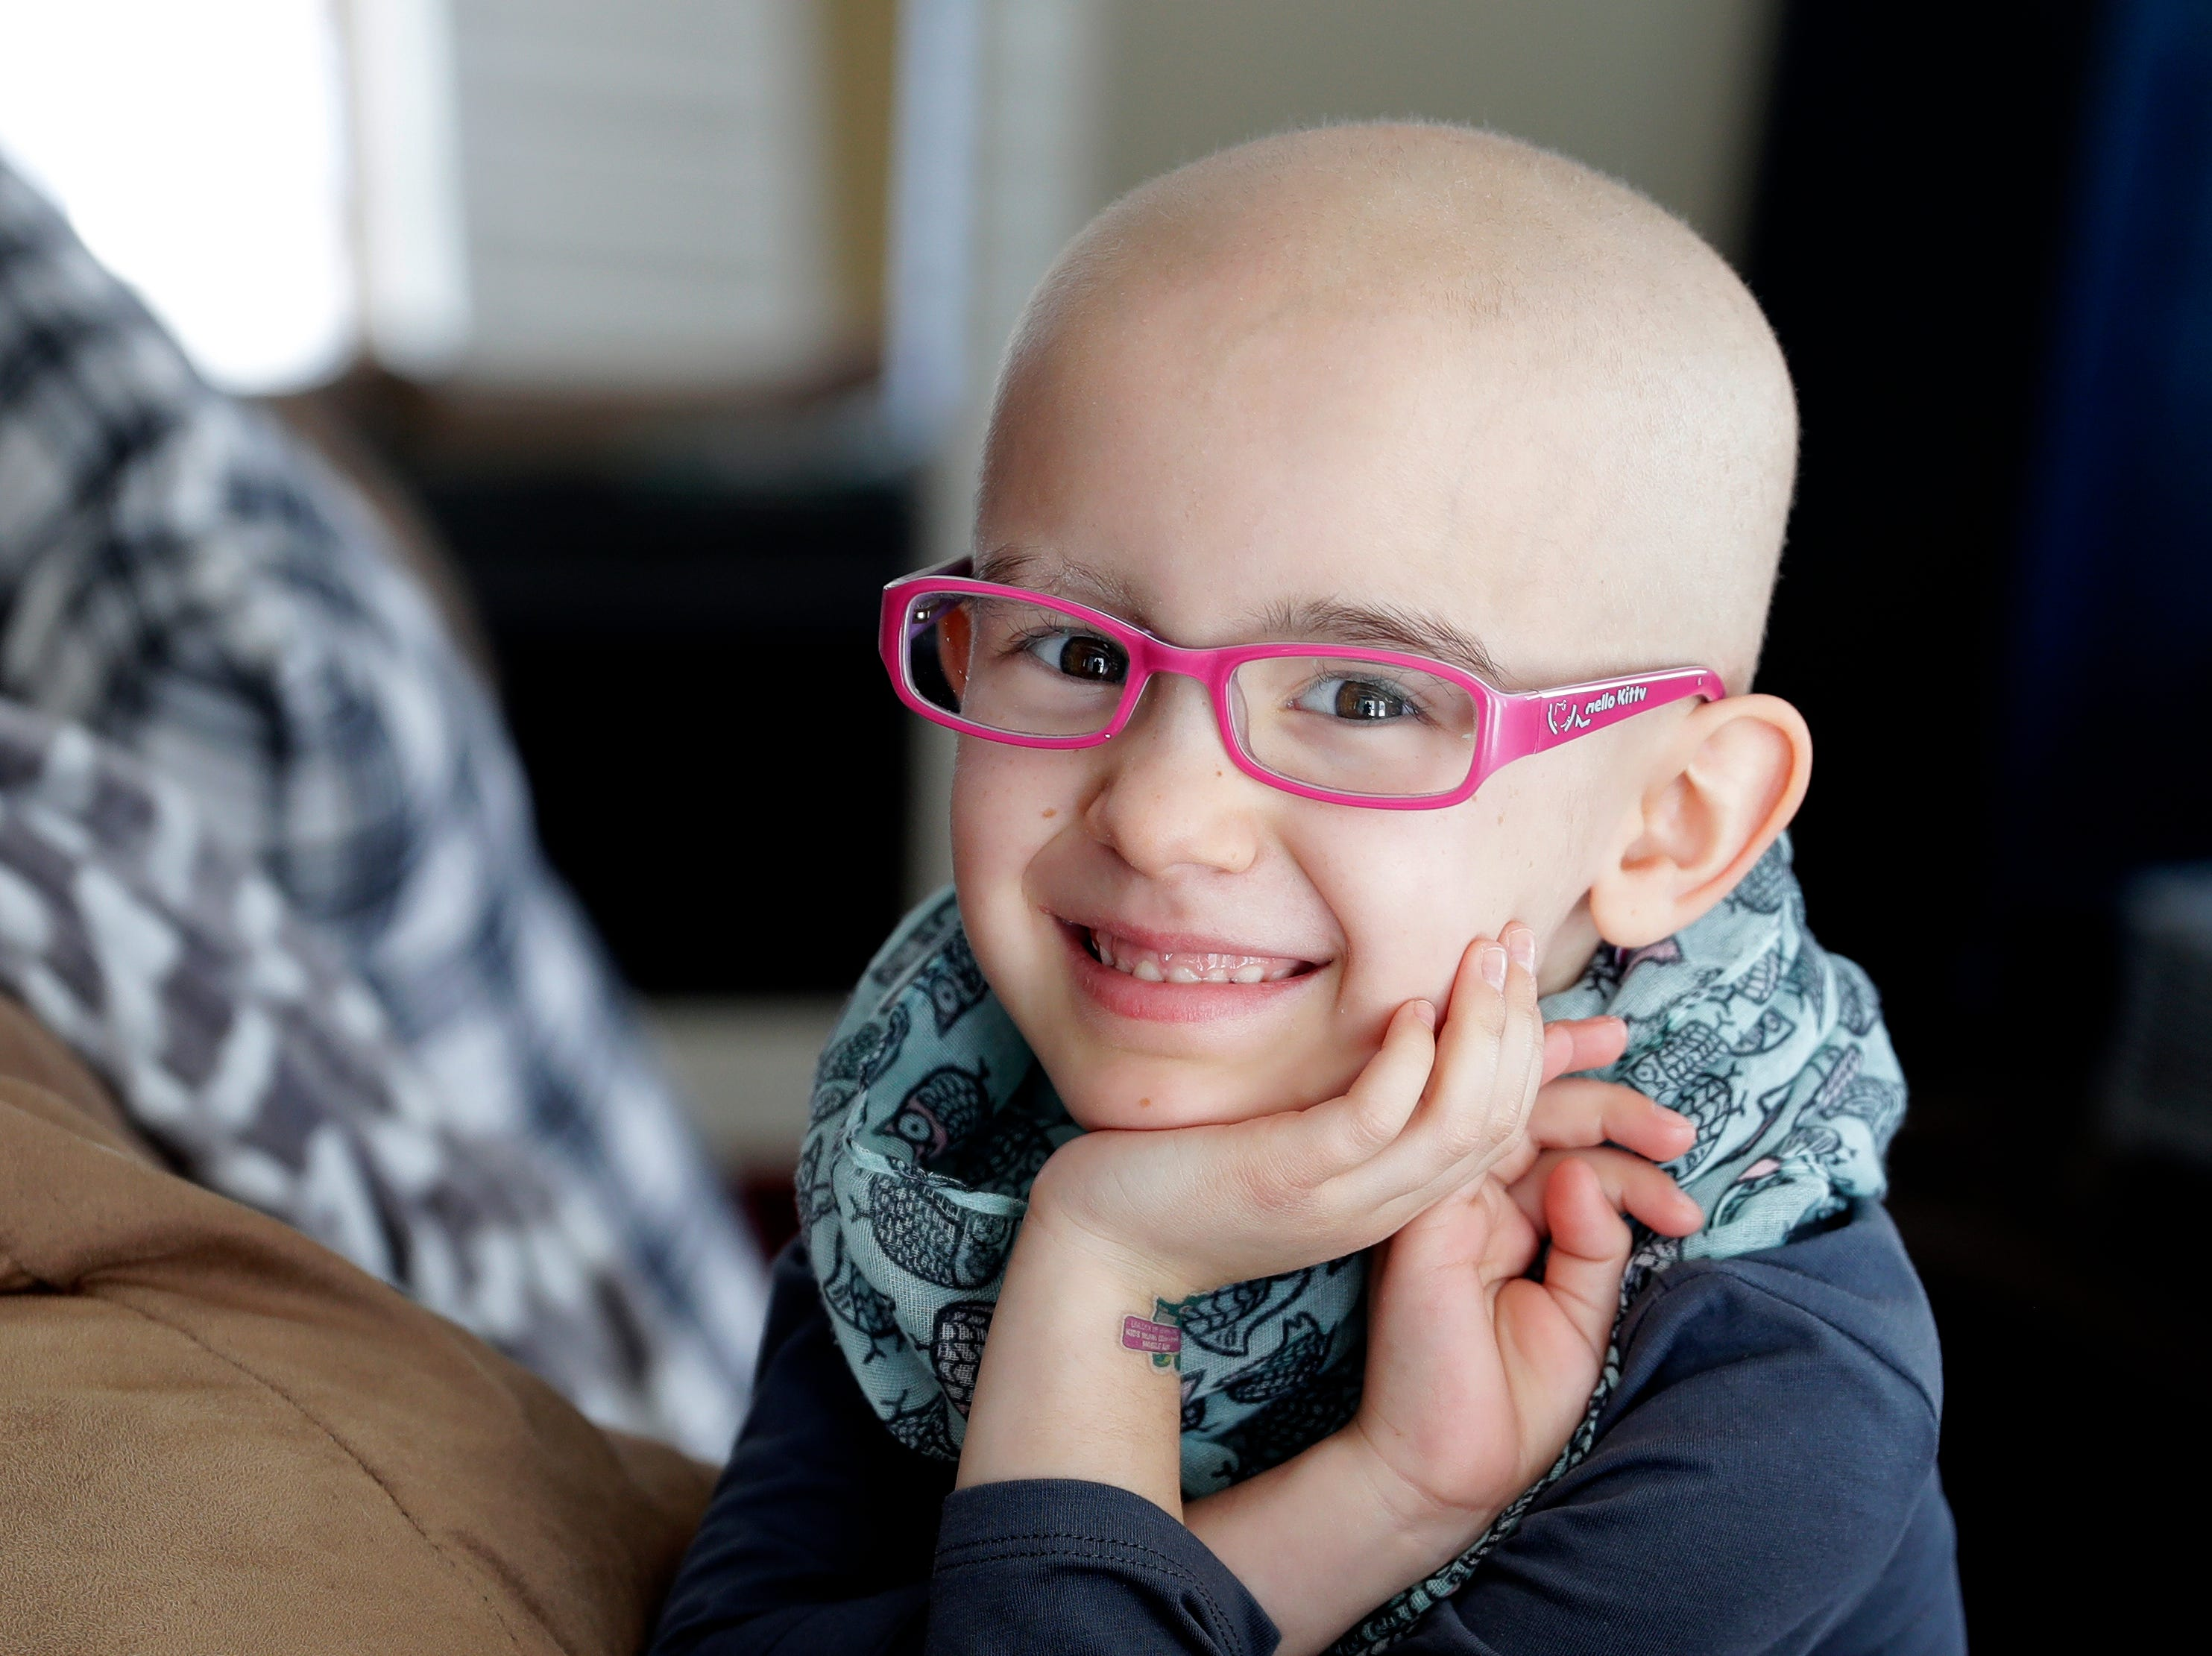 Lily Wertel, 6, of Wrightstown, Wis., is going through chemotherapy treatments after being diagnosed with an inoperable tumor in her lower abdomen. A fundraising benefit is scheduled for May 19, 2019, at the Riverside Ballroom in Green Bay, Wis.